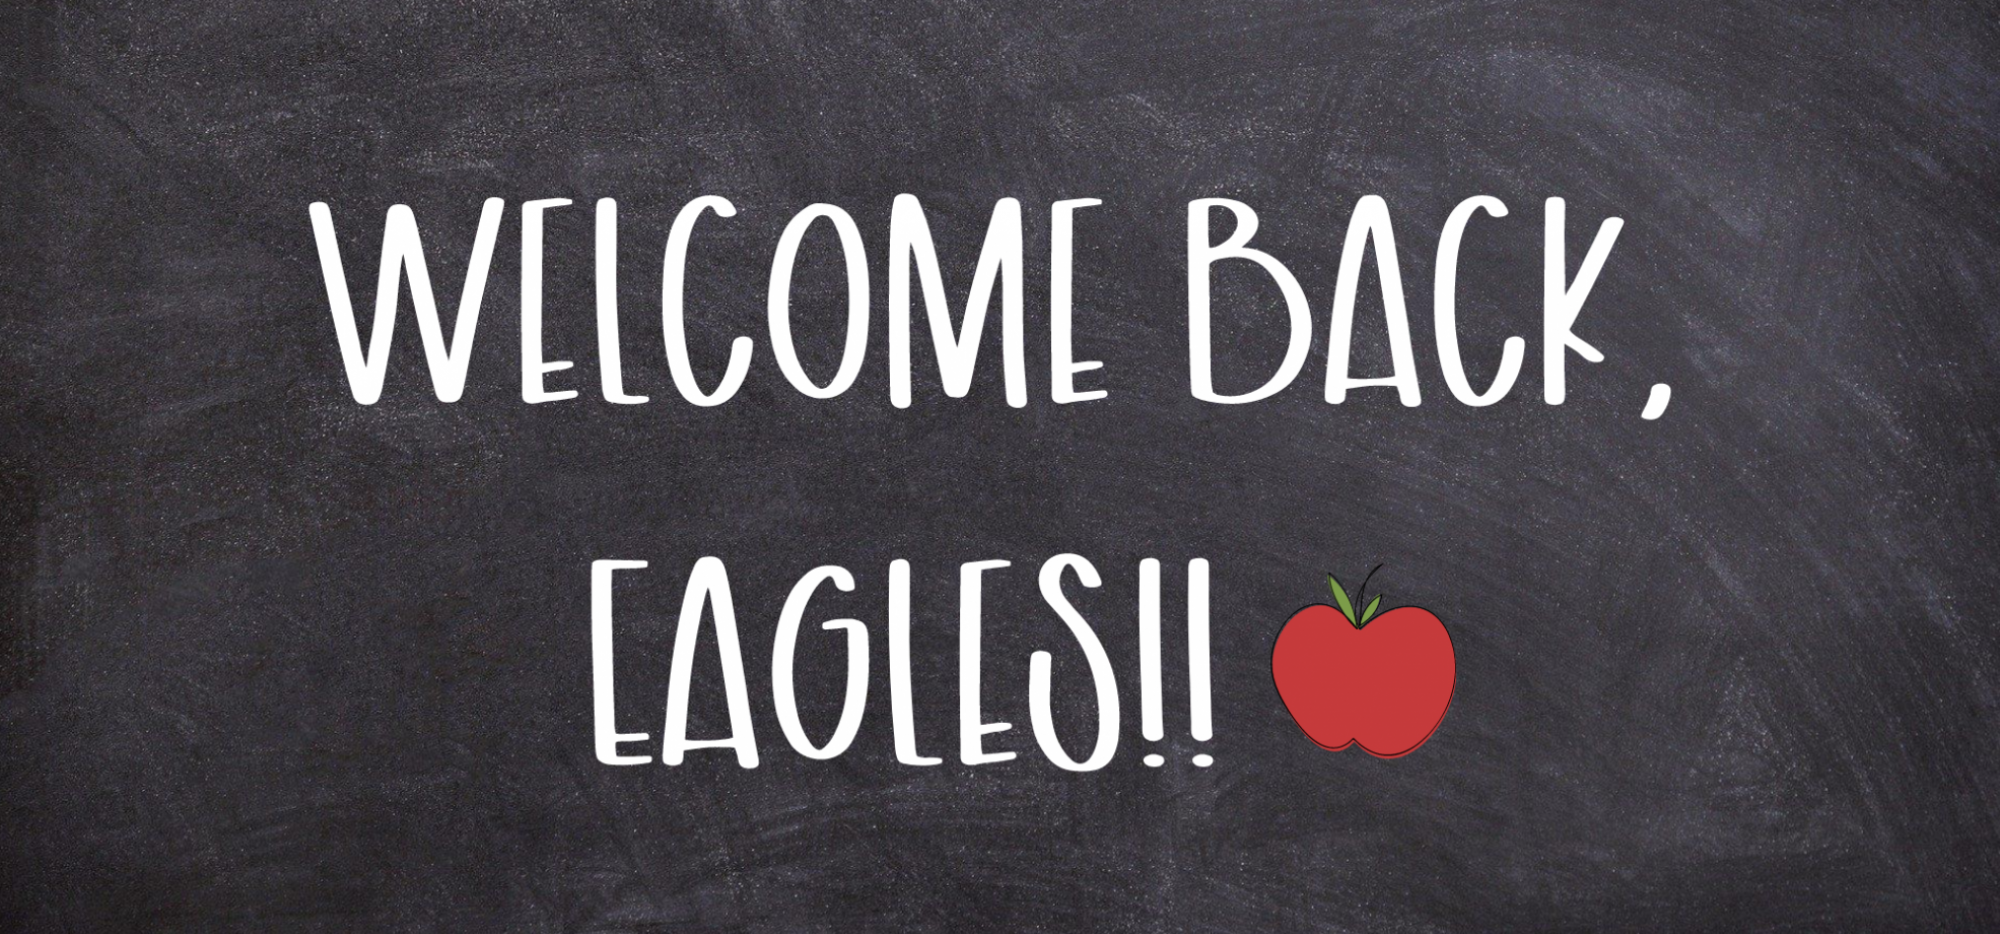 Welcome Back, Eagles